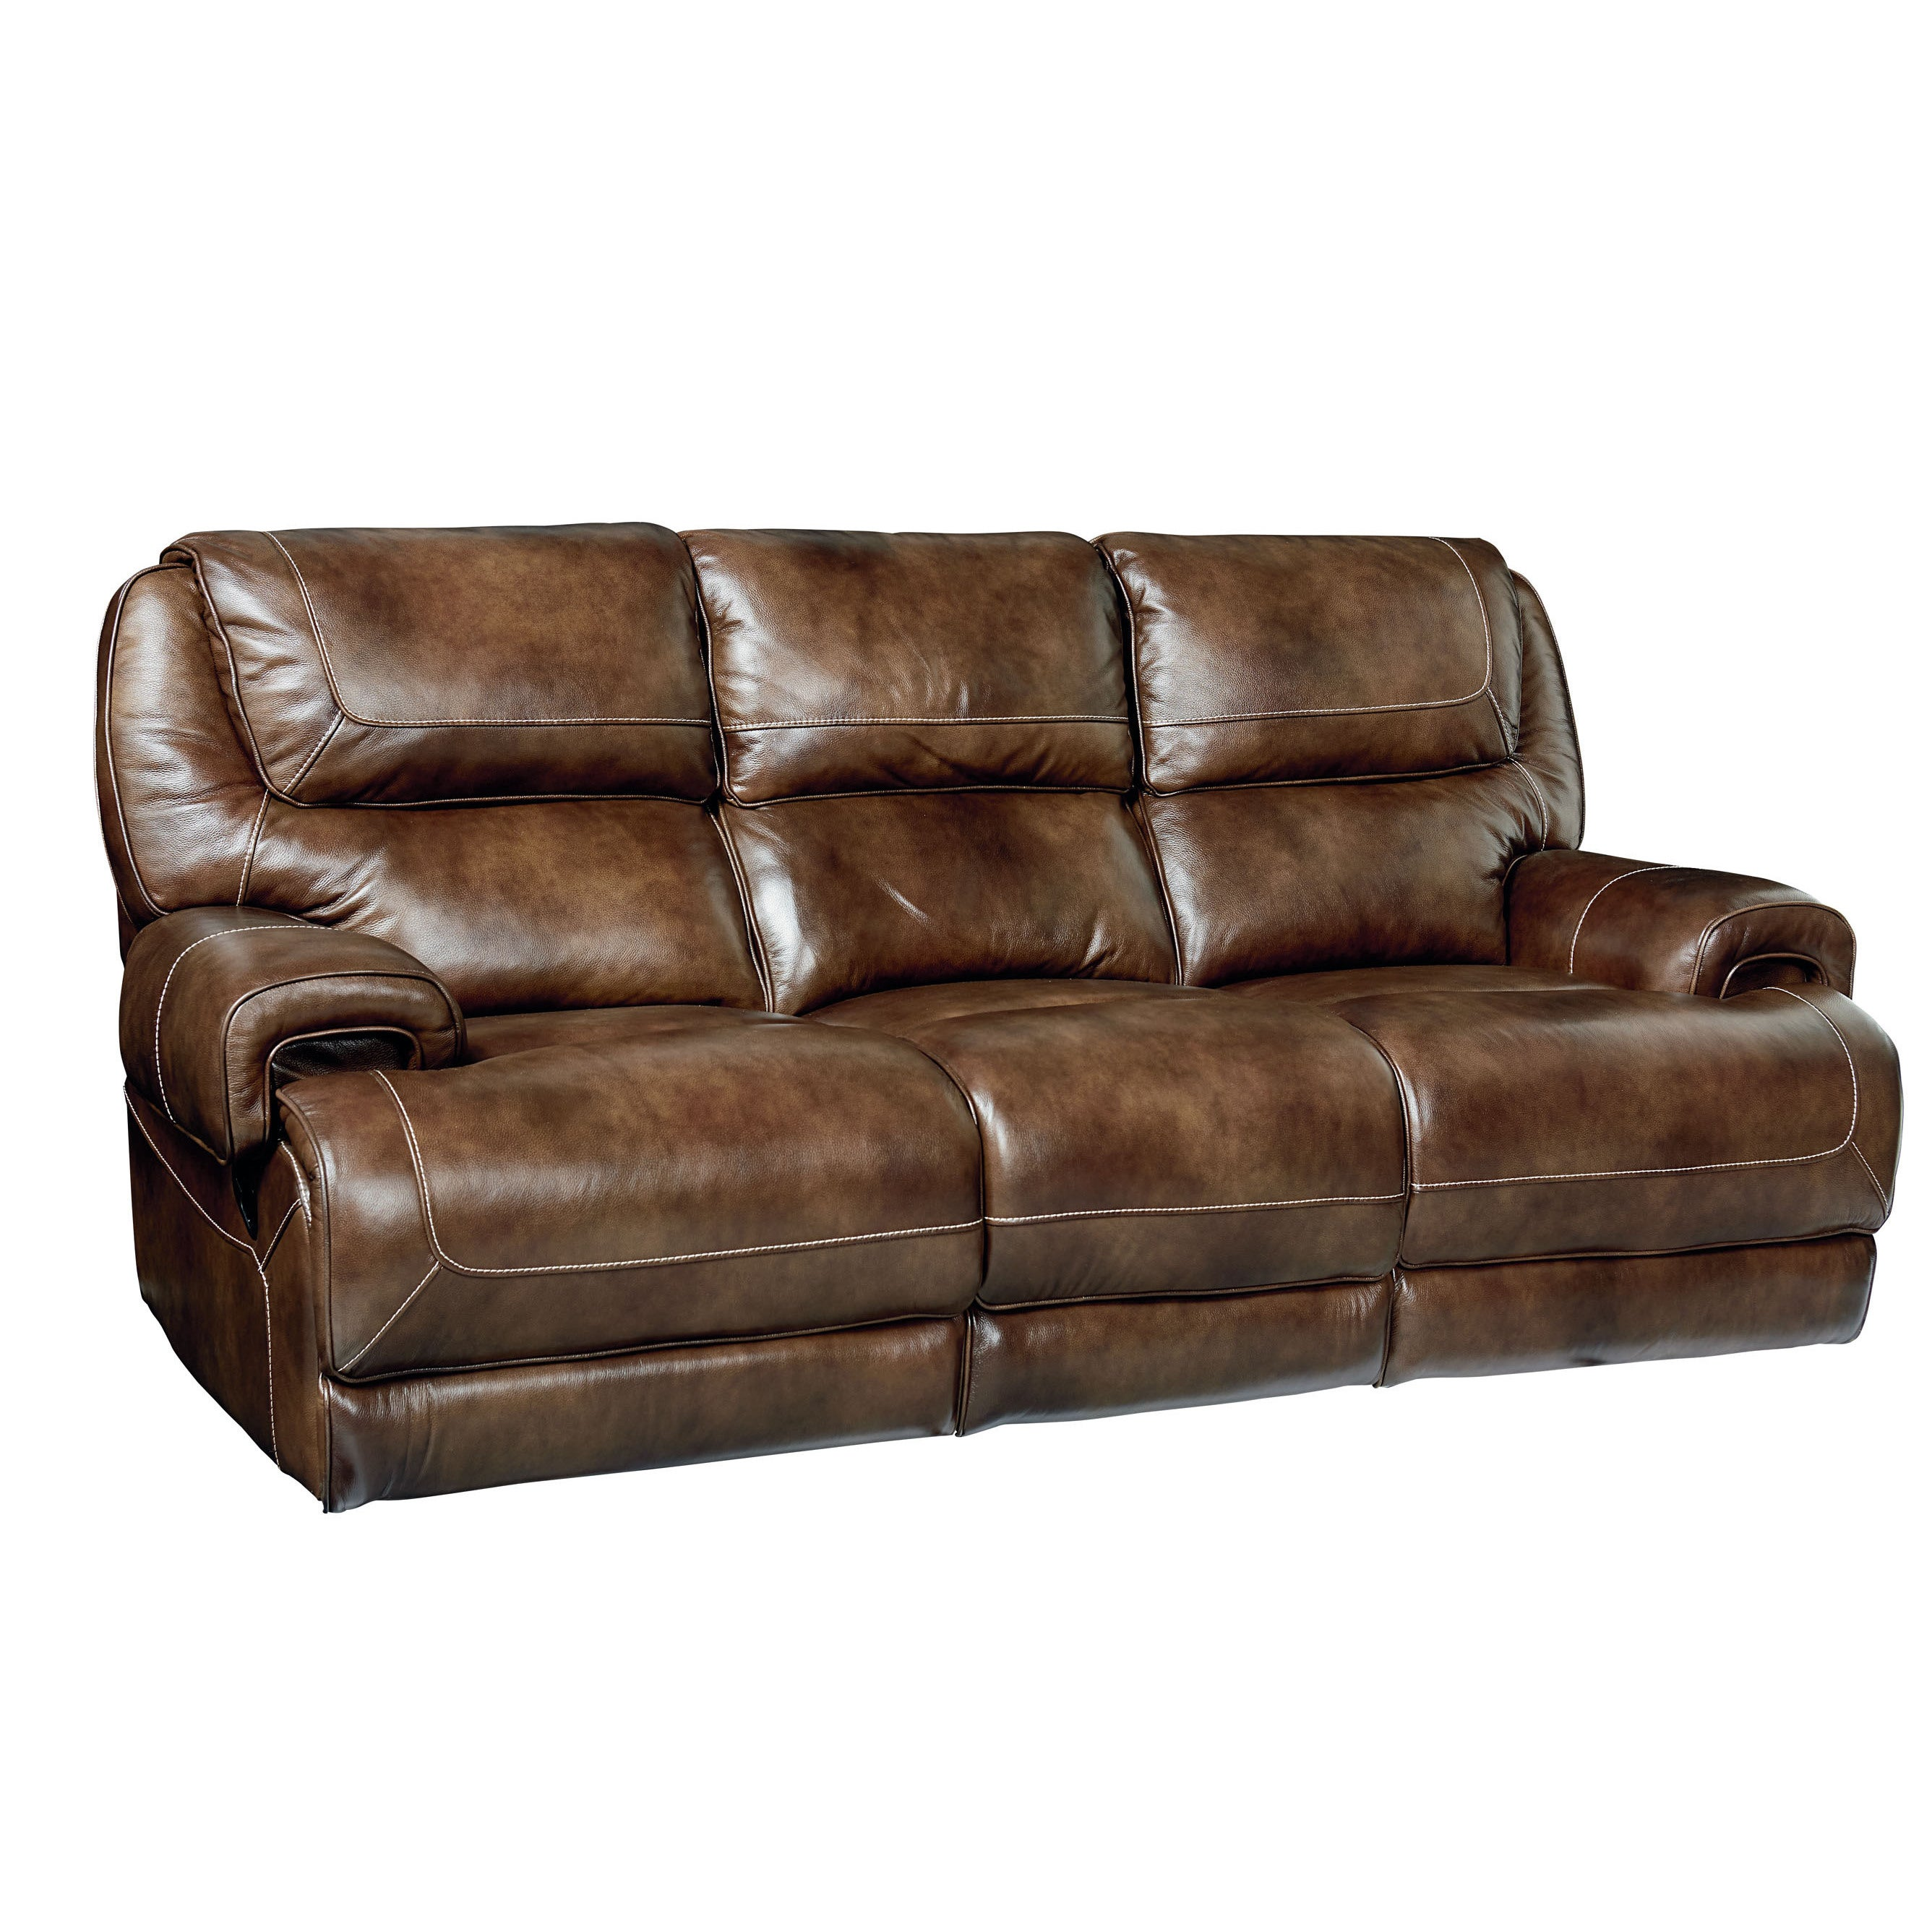 Standard Furniture Chisholm Rustic Brown Leather Manual Motion Sofa